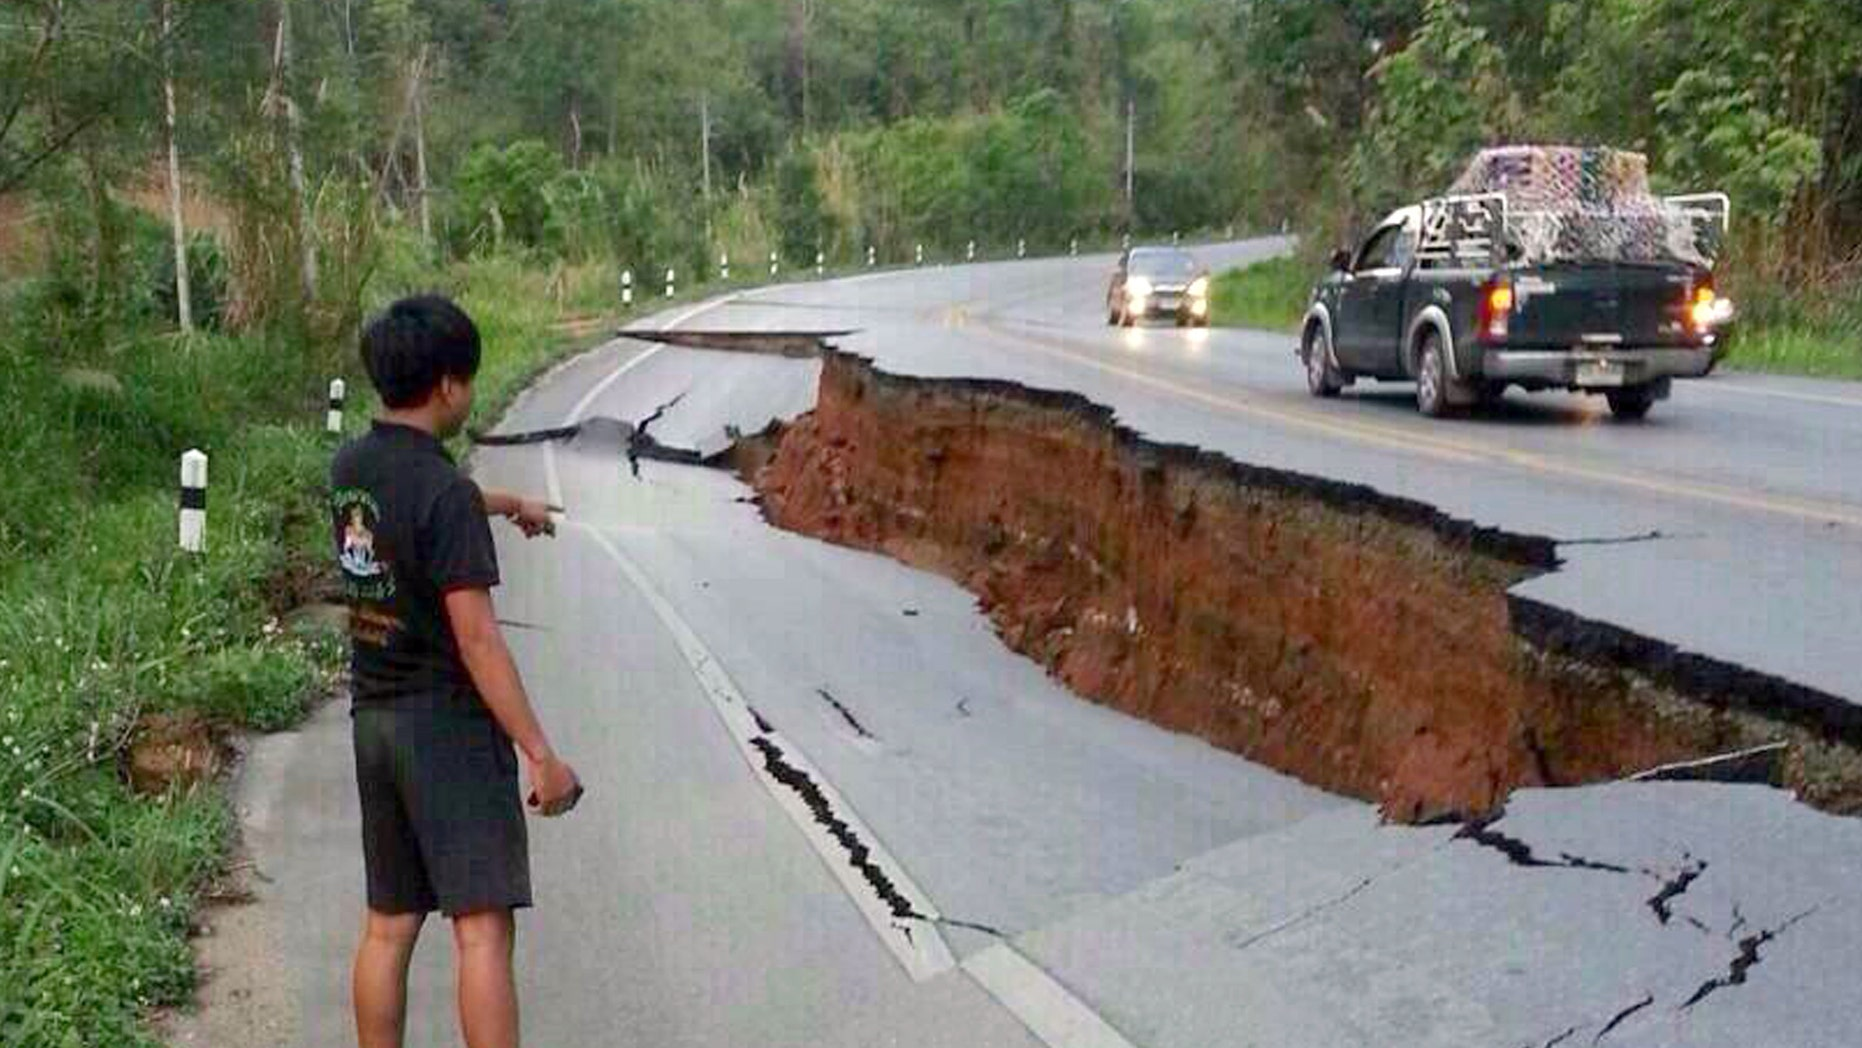 May 5, 2014 - A man eyes a big crack on a damaged road following a strong earthquake in Phan district of Chiang Rai province, northern Thailand. The strong quake shook northern Thailand and Myanmar Monday evening, and light damage was reported.